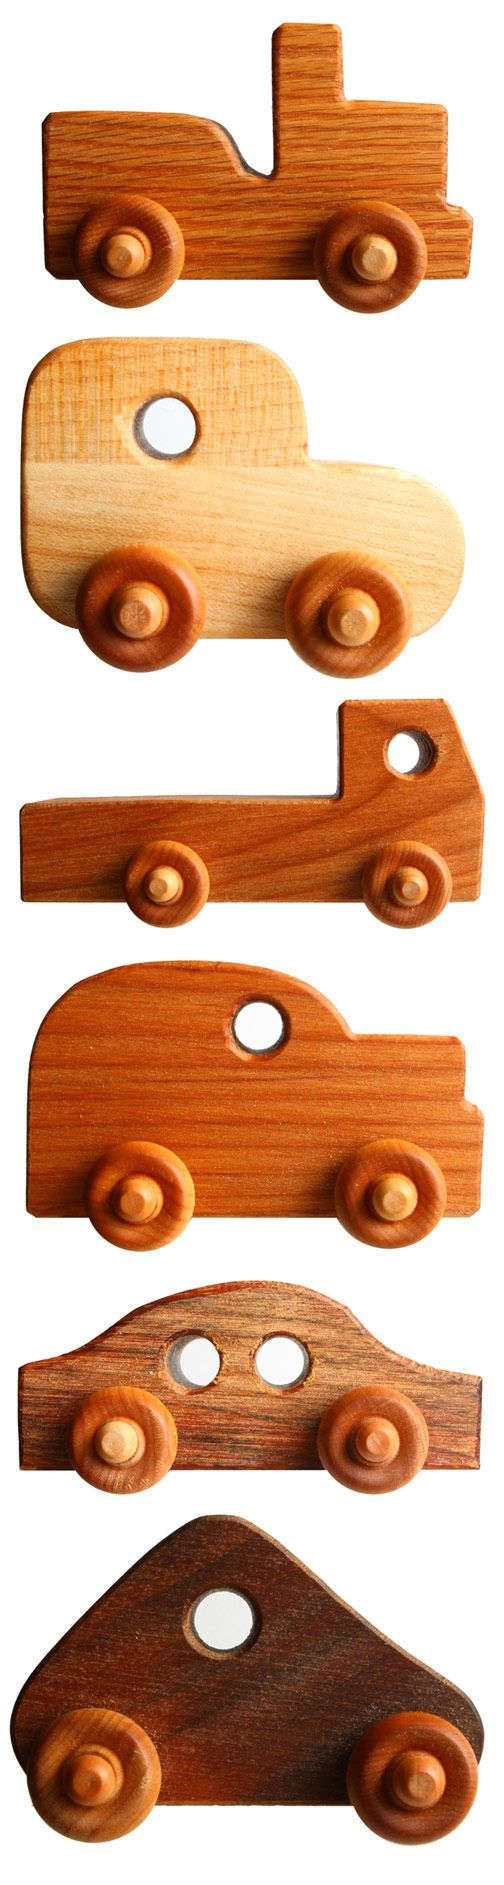 Wooden toys images  Sips From the Dribble Glass of Life I Admit It My Dadus Cool